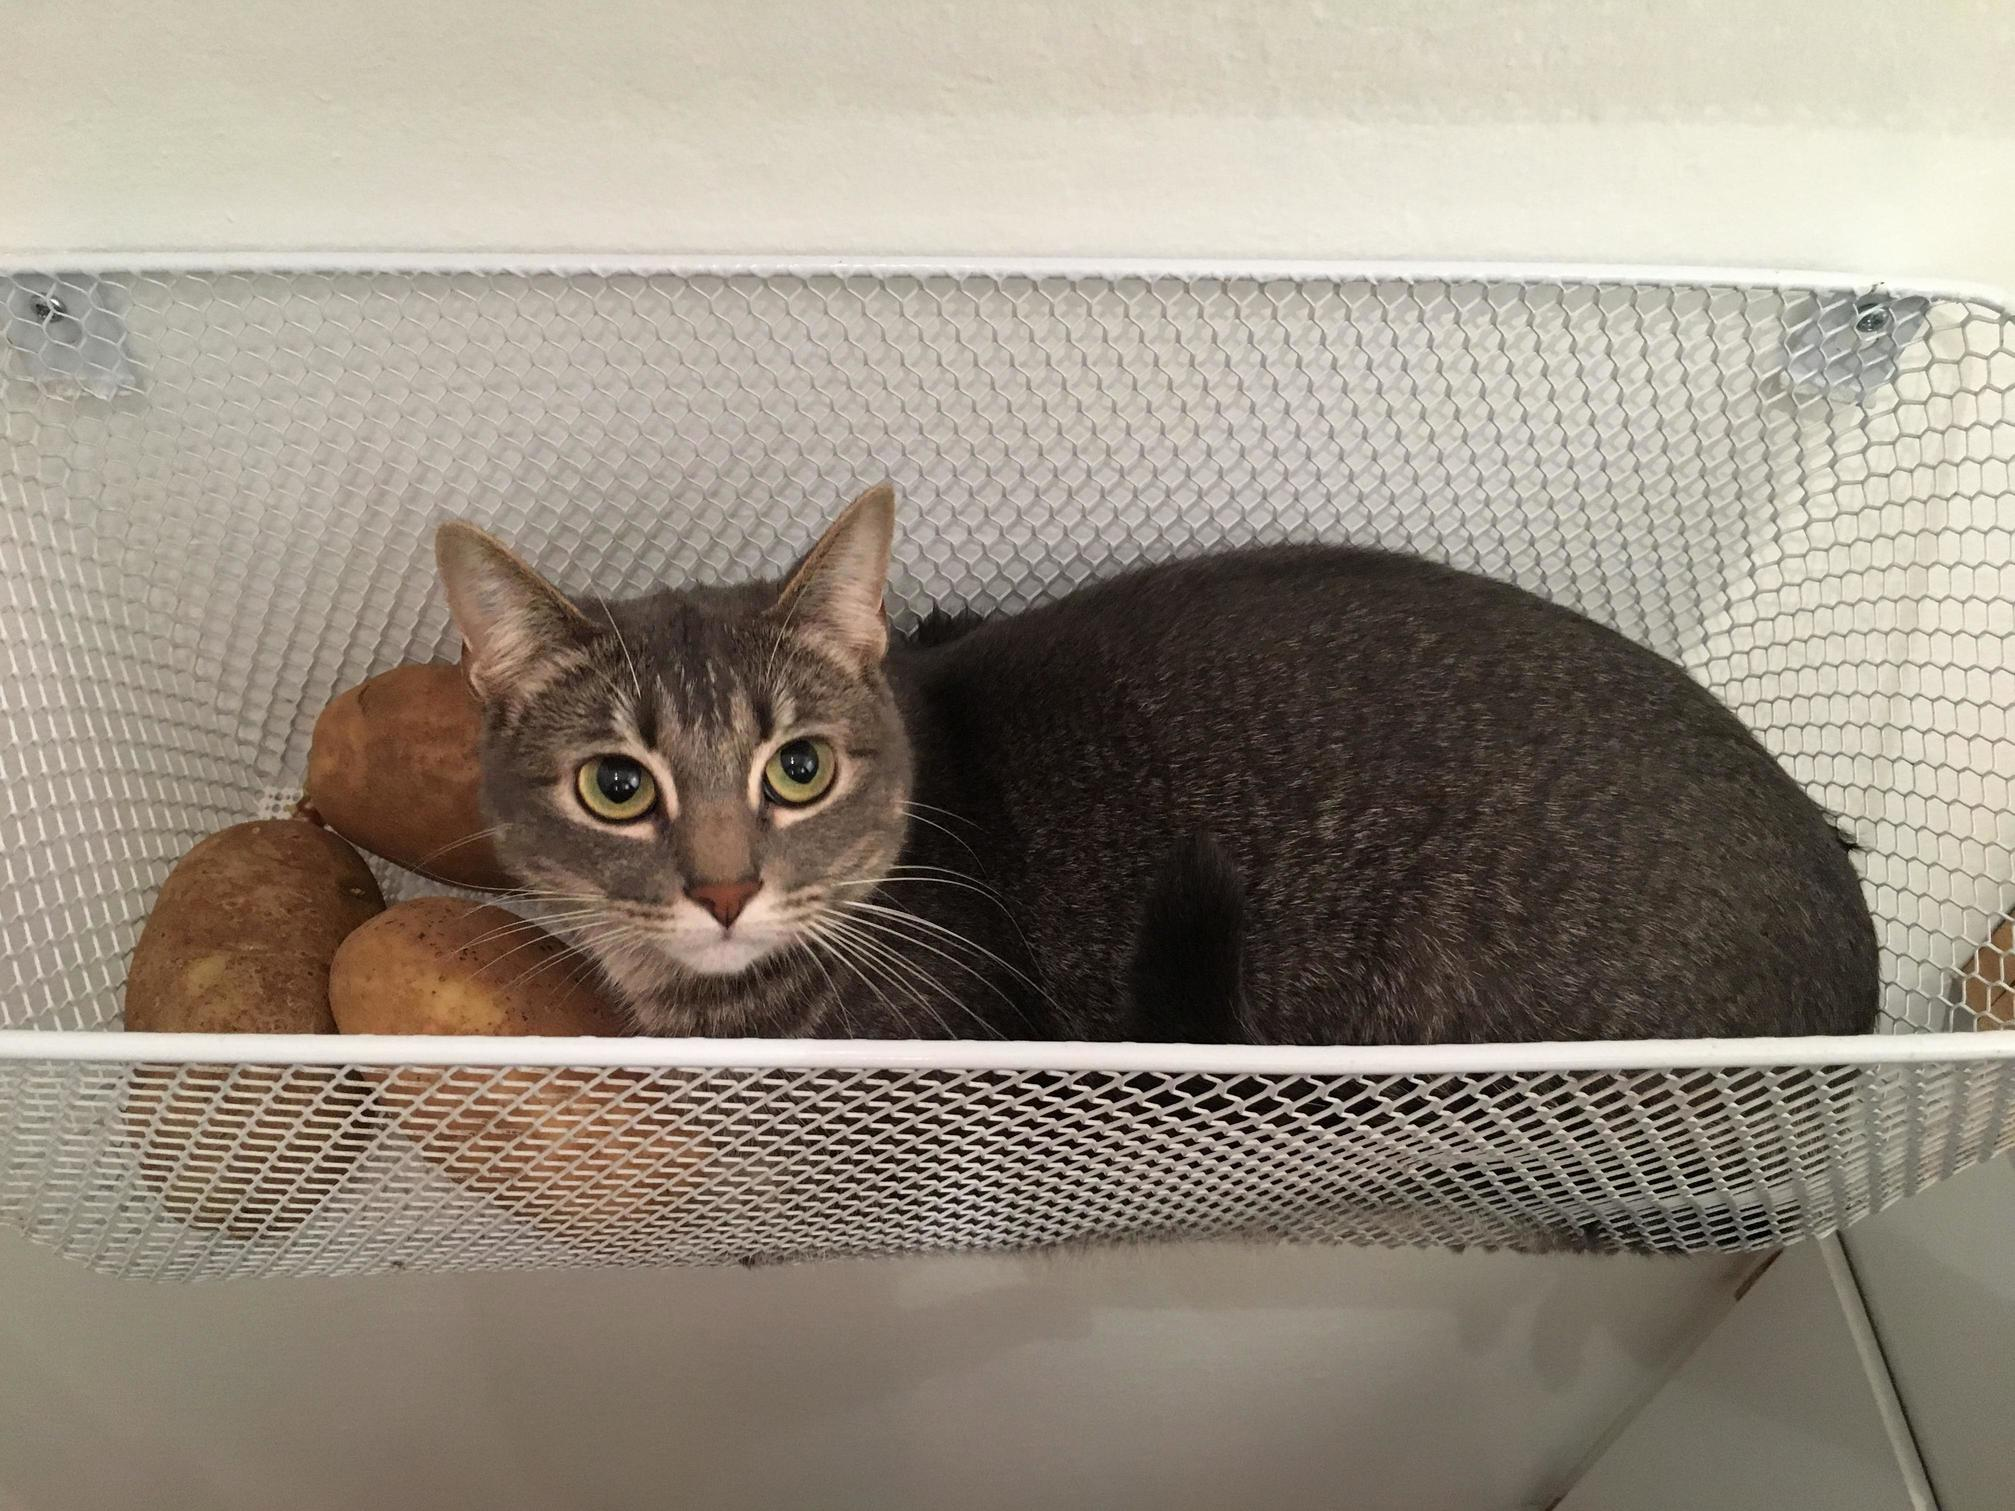 My friend caught her cat snuggling potatoes